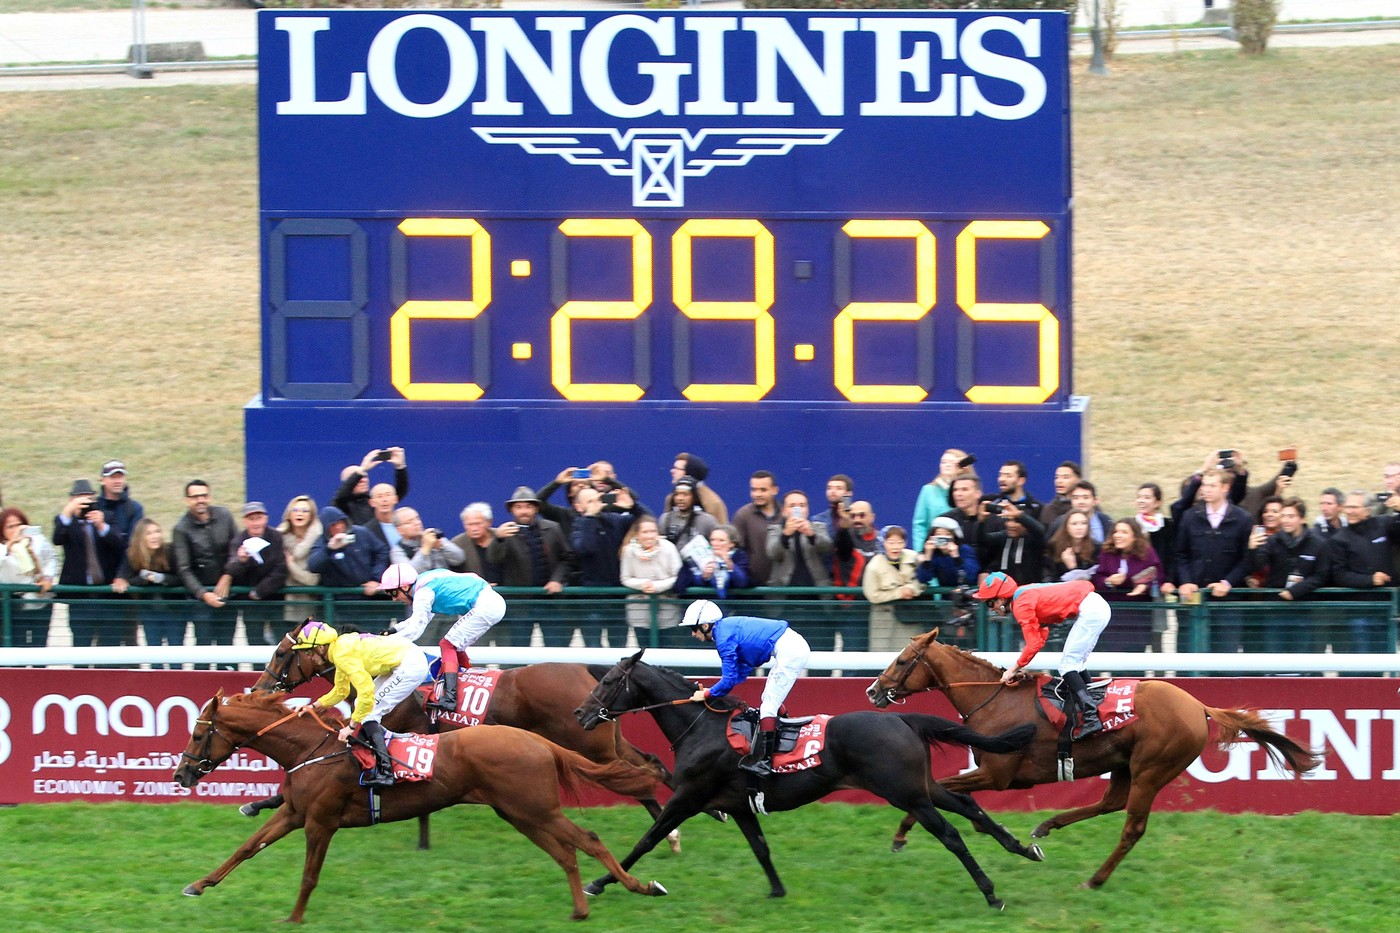 Longines Flat Racing Event: Longines times the Qatar Prix de l'Arc de Triomphe  back at ParisLongchamp 7